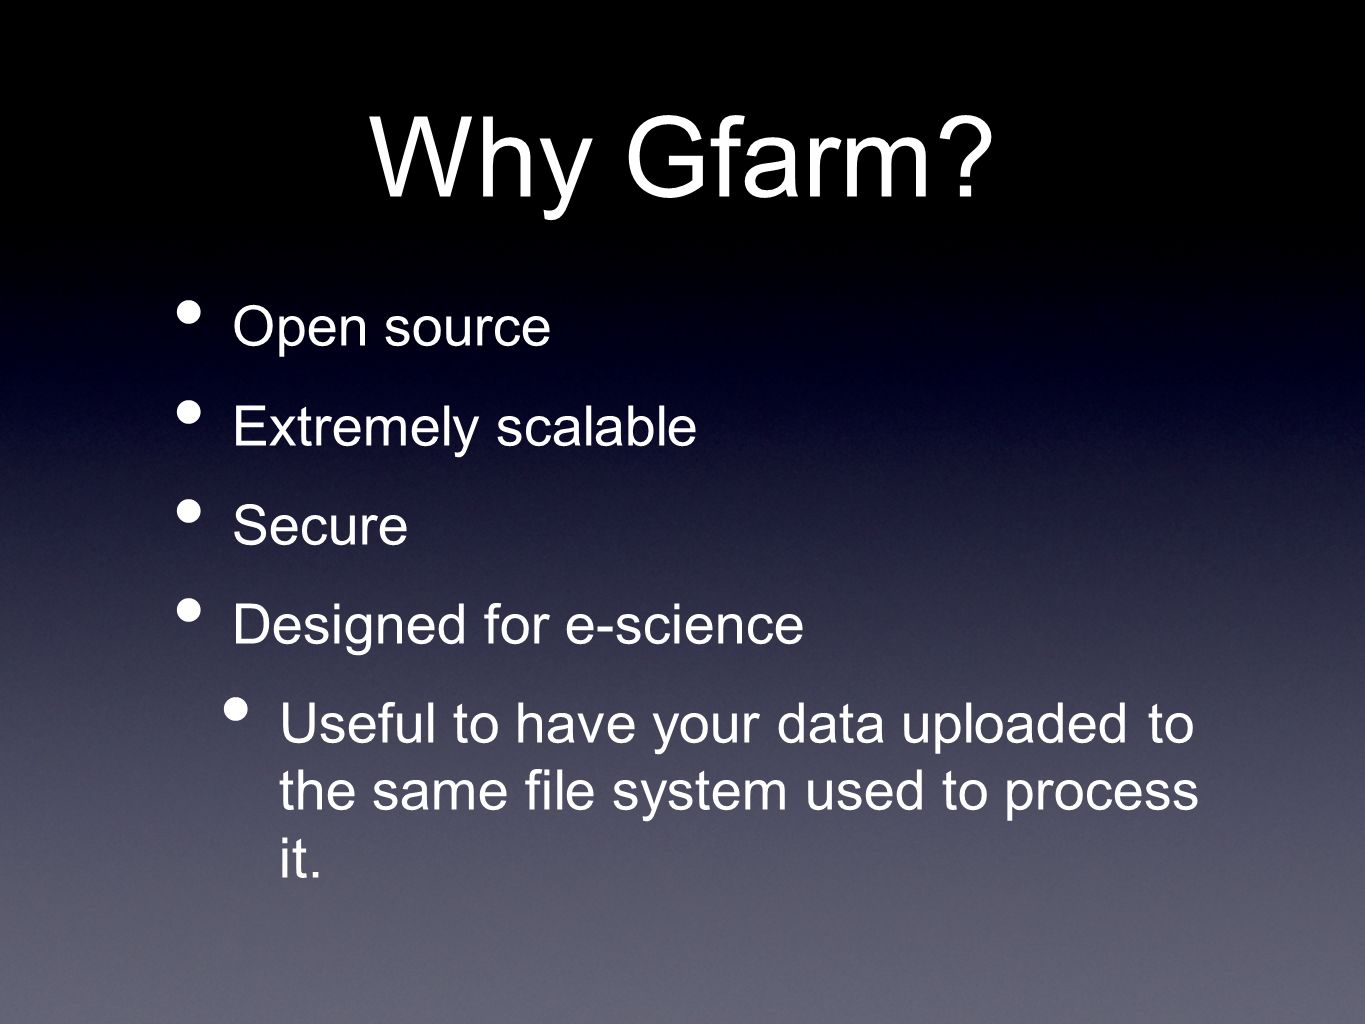 Why Gfarm? Open source Extremely scalable Secure Designed for e-science Useful to have your data uploaded to the same file system used to process it.